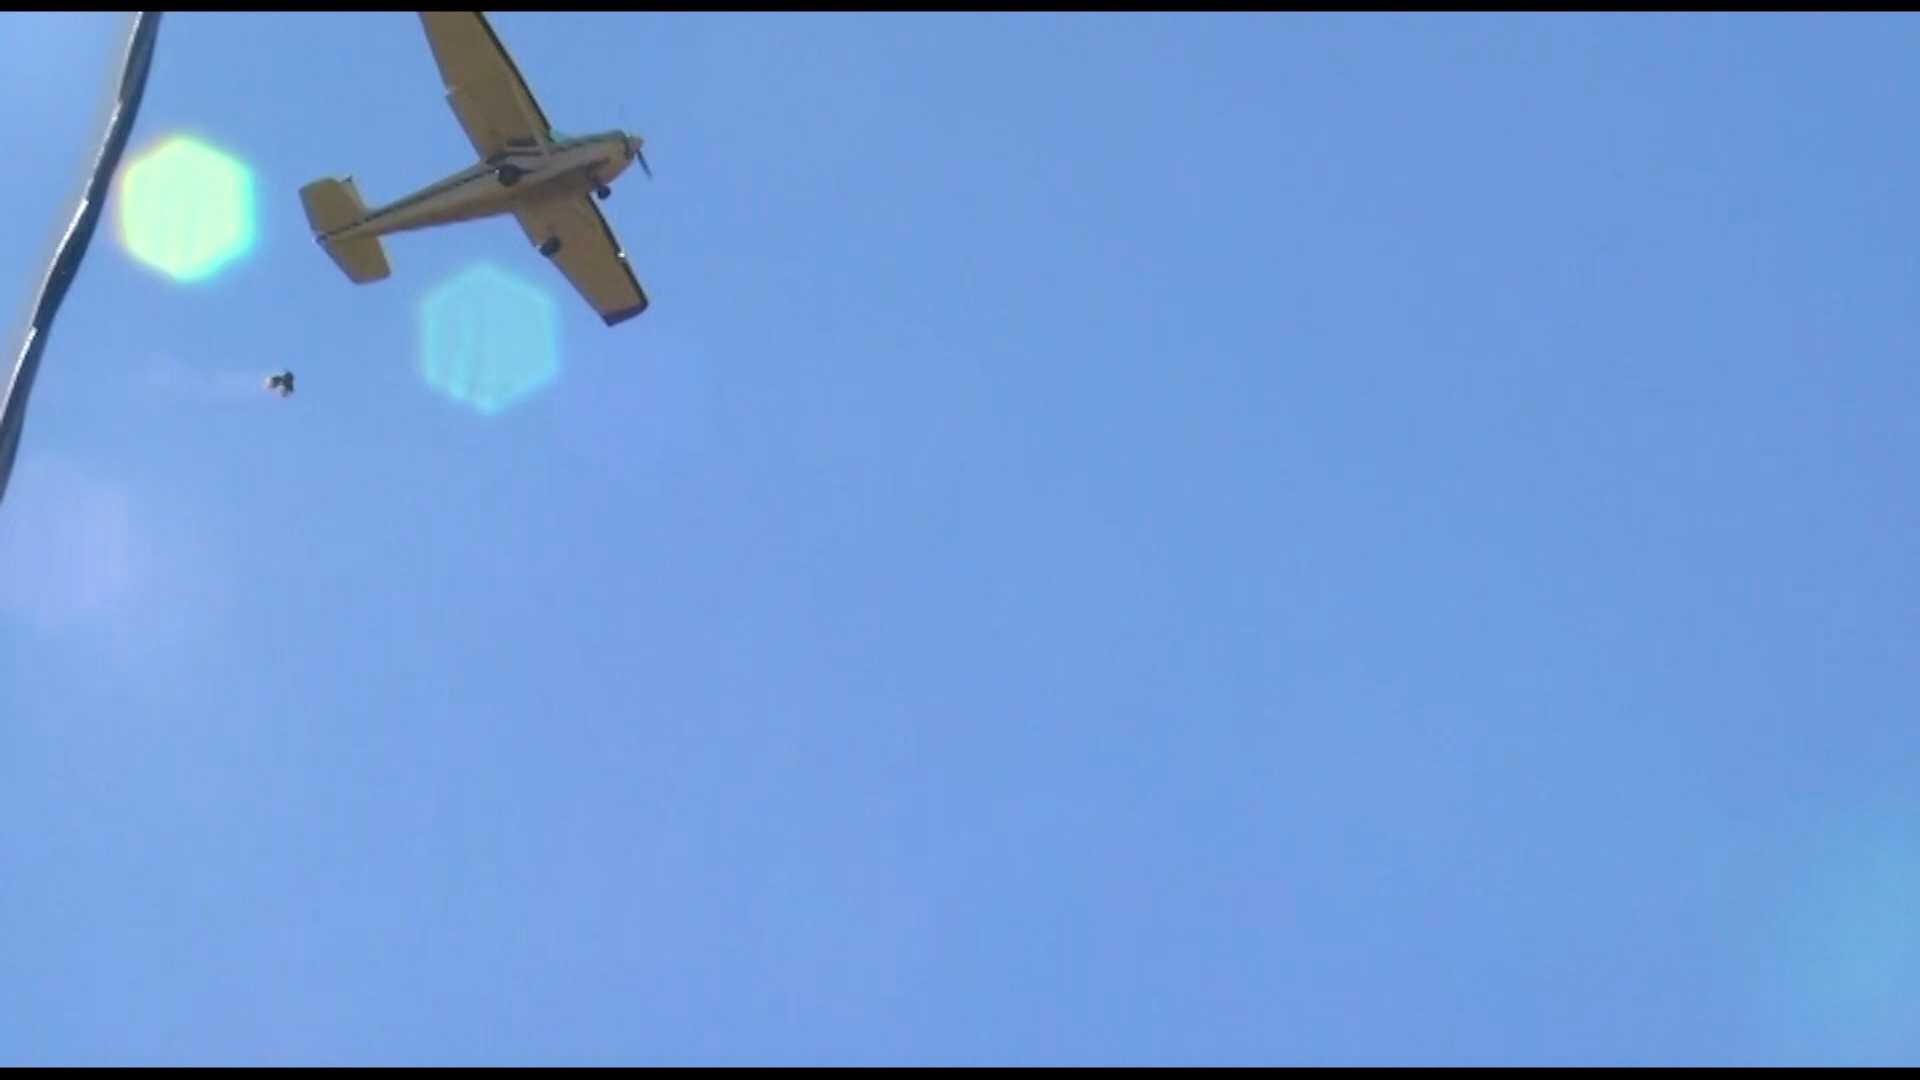 A plane drops a turkey over Yellville, Ark. on Saturday